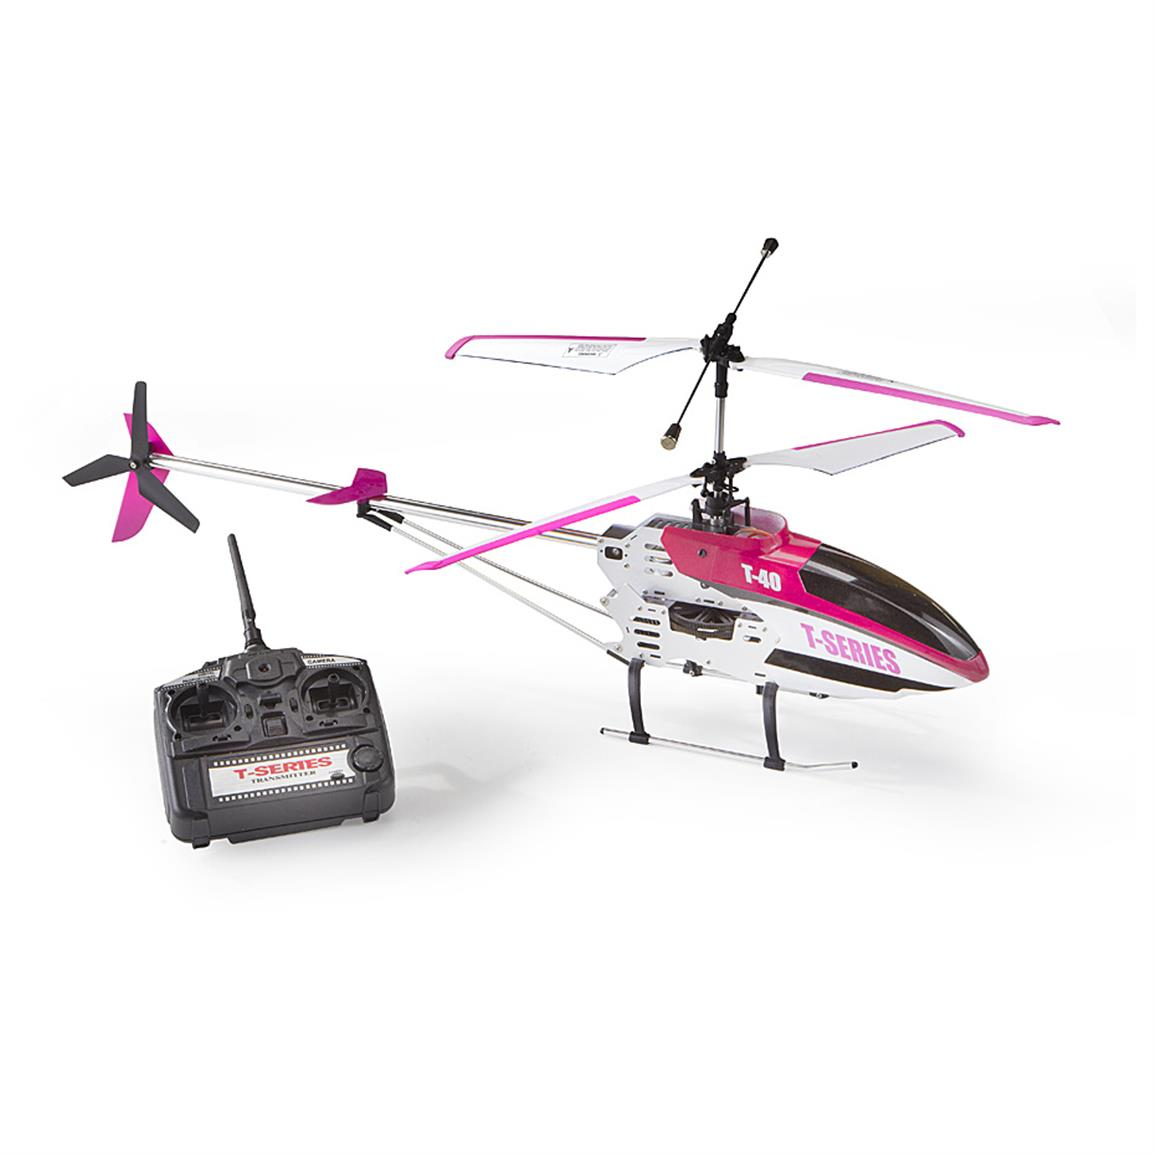 remotecontrol helicopter with hd camera 618290 remote